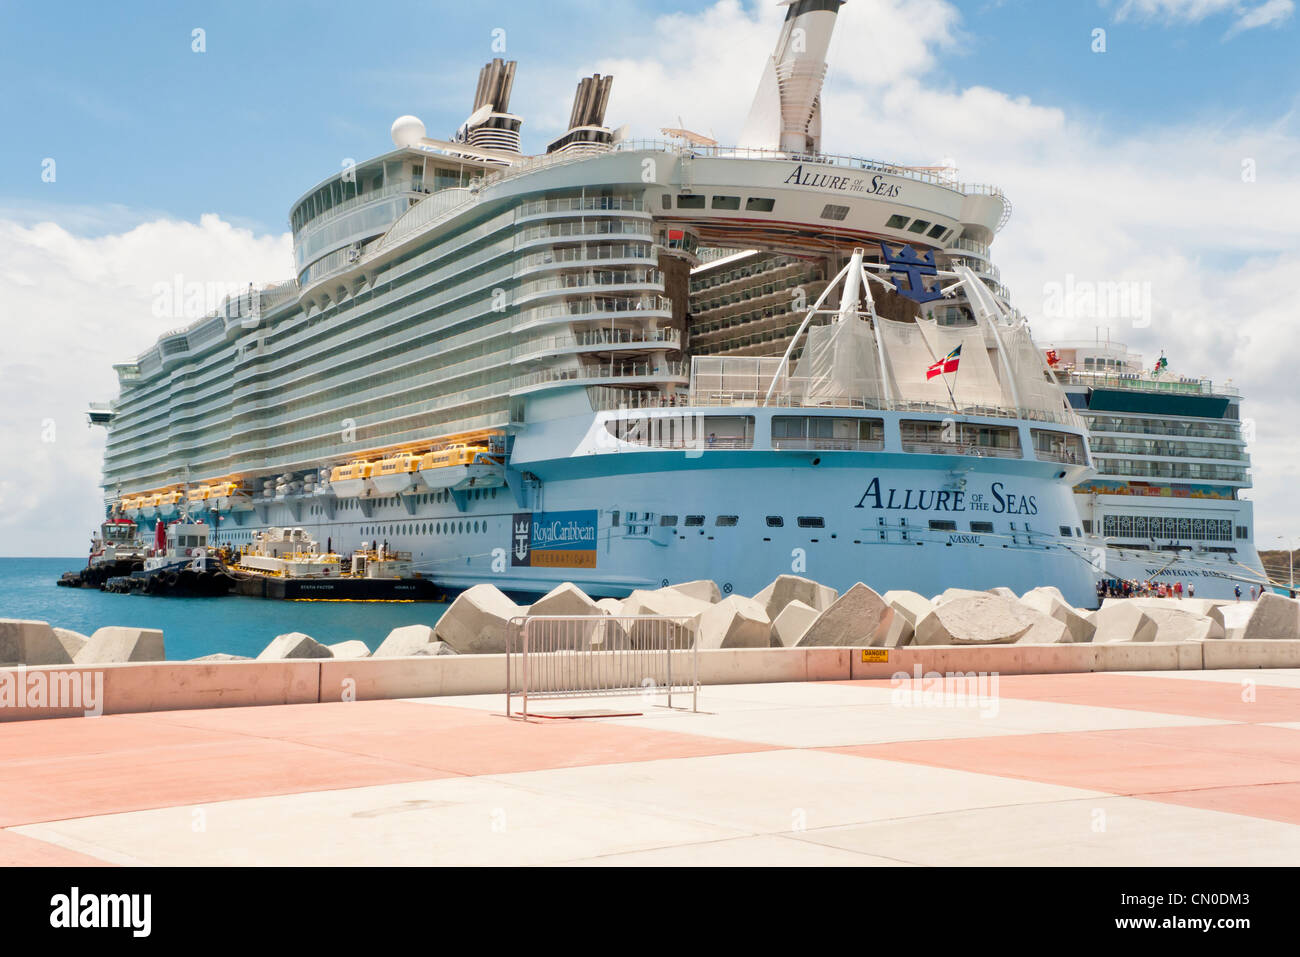 The Stern Of The Largest Cruise Ship In The World The Allure Of - Allure cruise ship